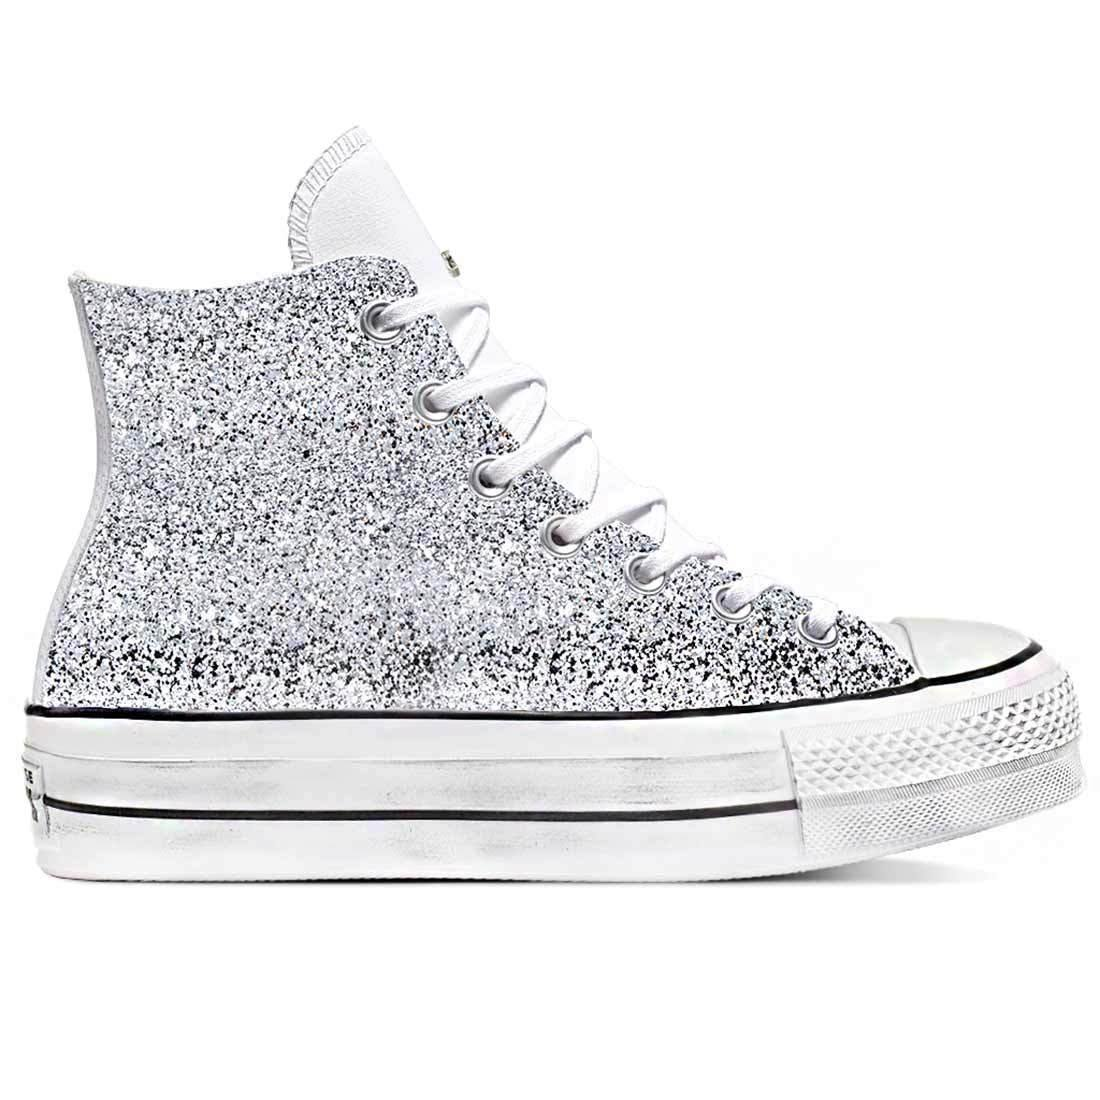 all star platform in pelle bianche con glitter alte